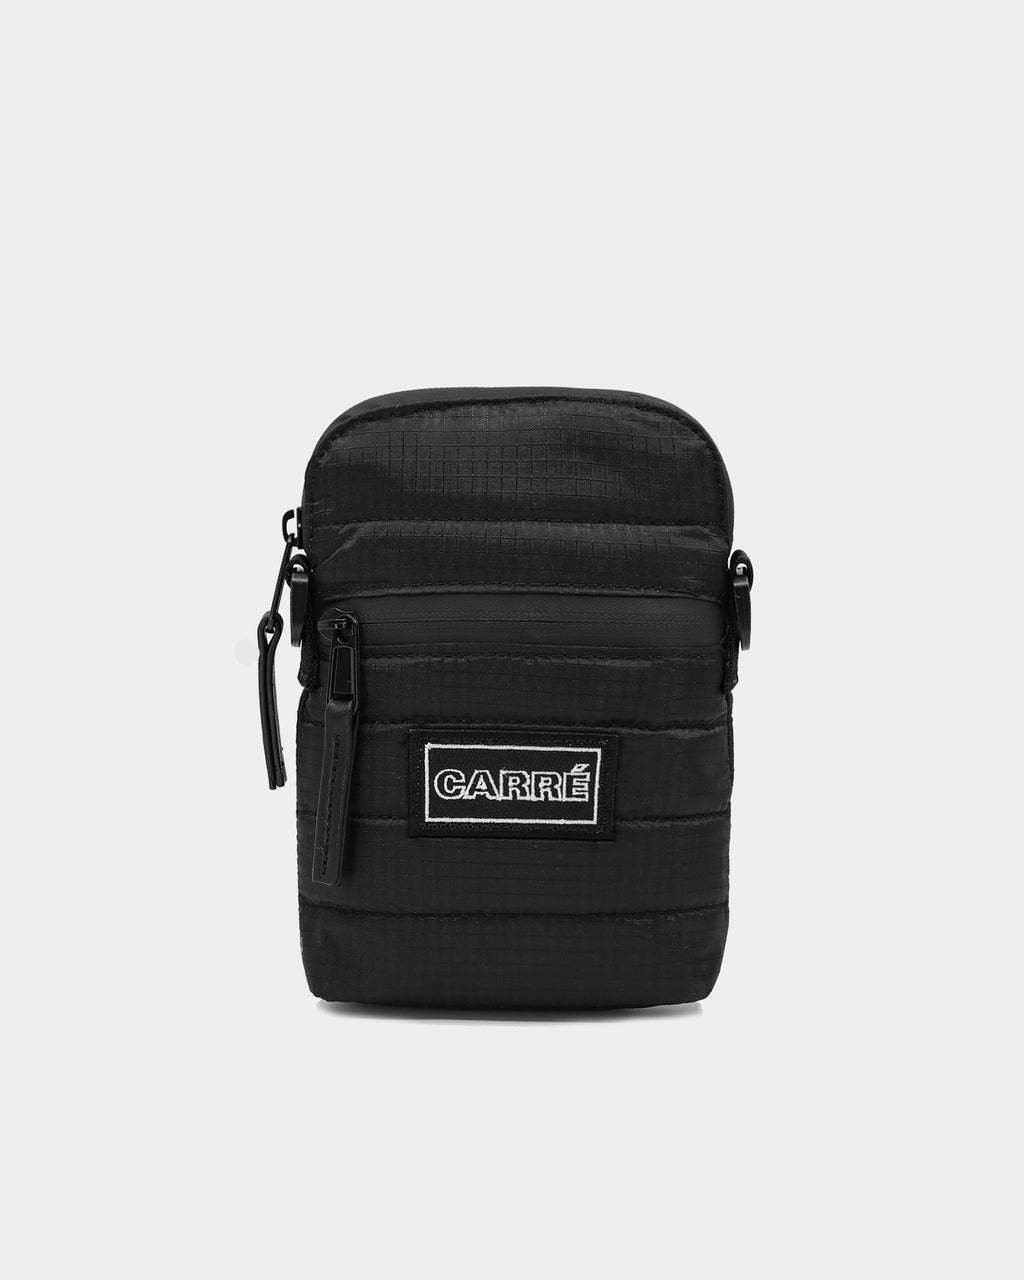 Carré Men's Roadman Pouch Black